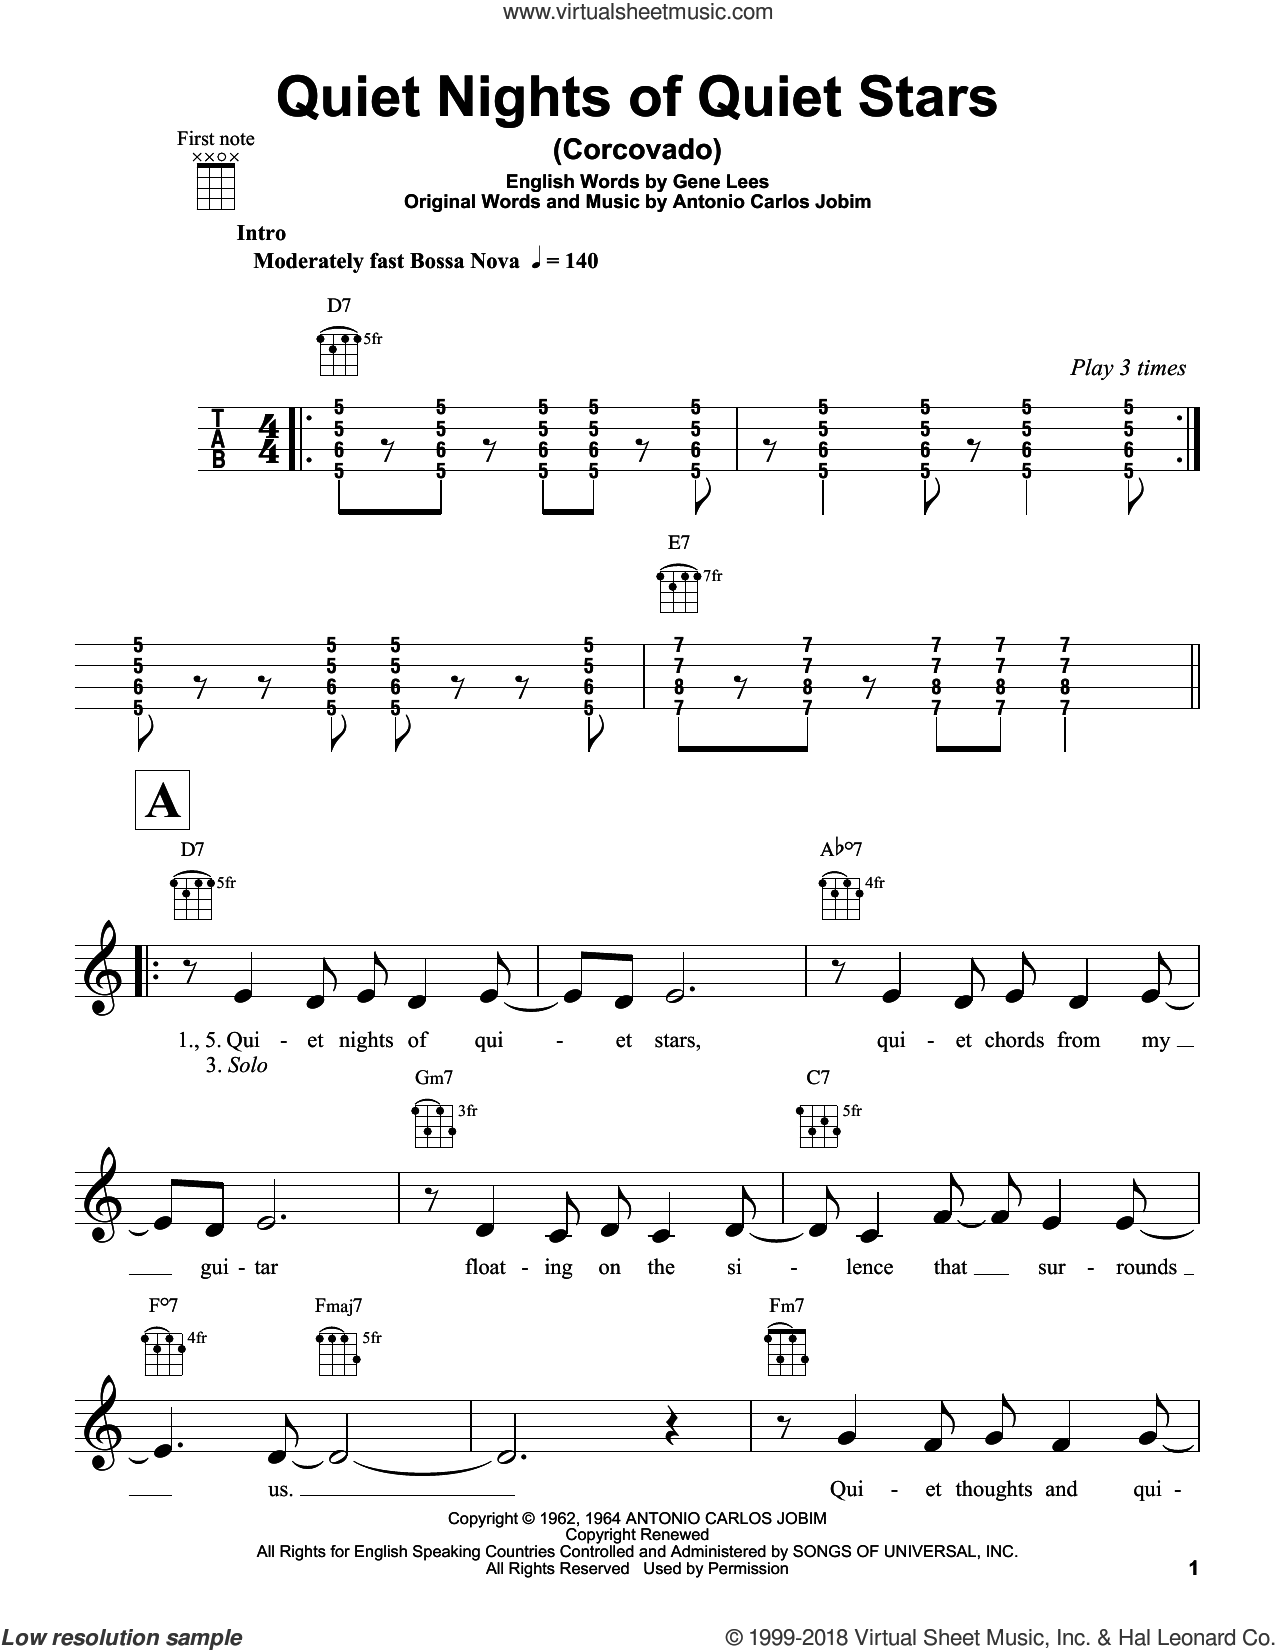 Quiet Nights Of Quiet Stars (Corcovado) sheet music for ukulele by Antonio Carlos Jobim, Andy Williams and Eugene John Lees, intermediate